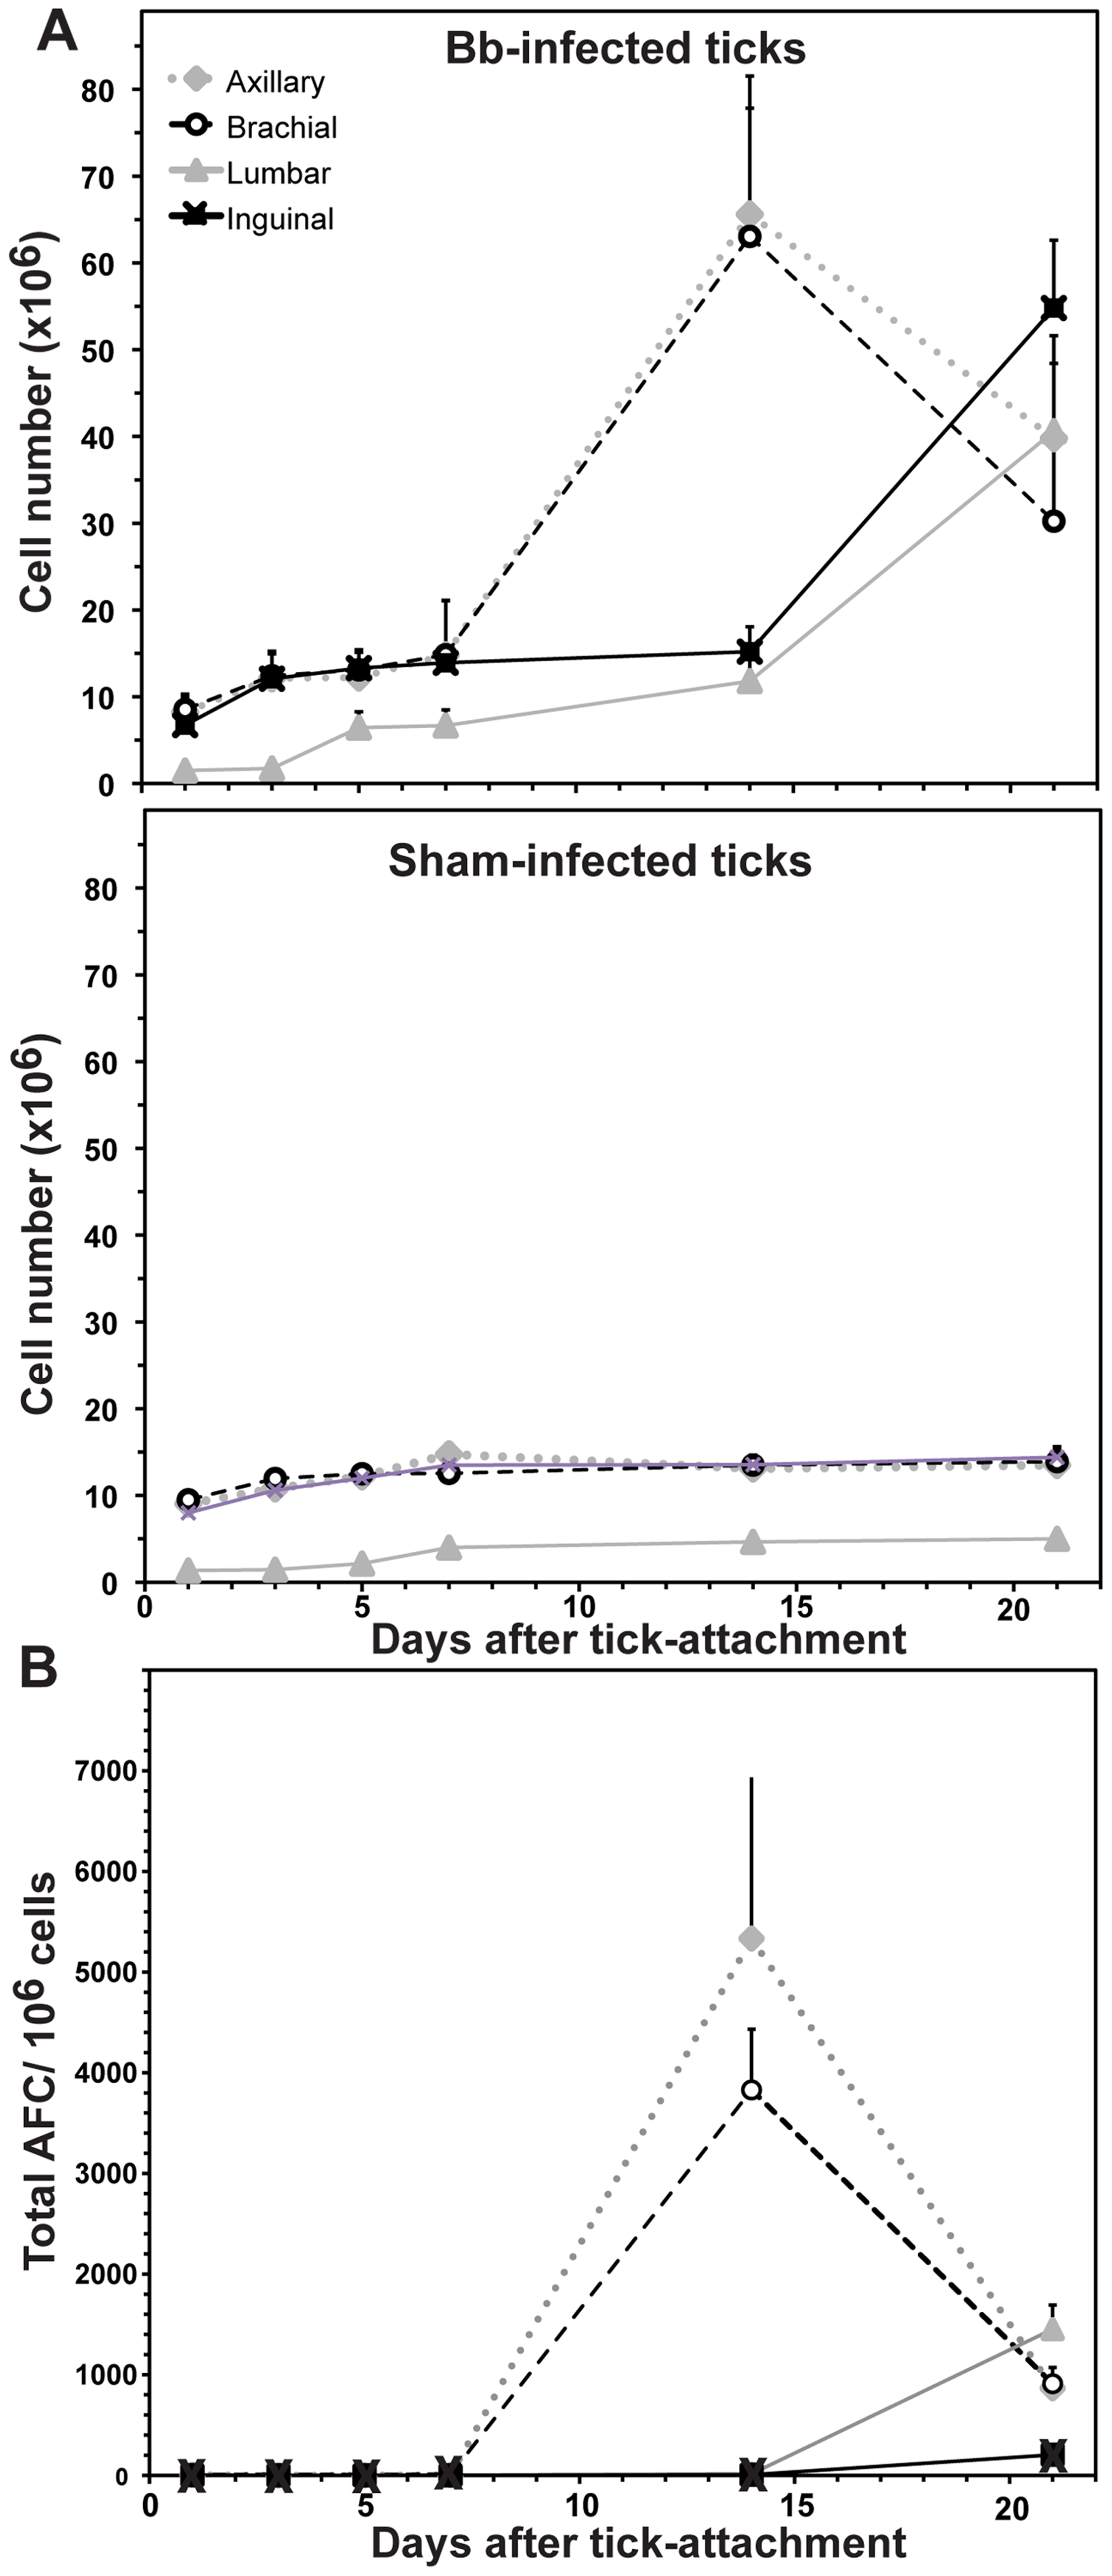 Tick-borne infection with <i>B. burgdorferi</i> causes systemic lymphadenopathy in mice.